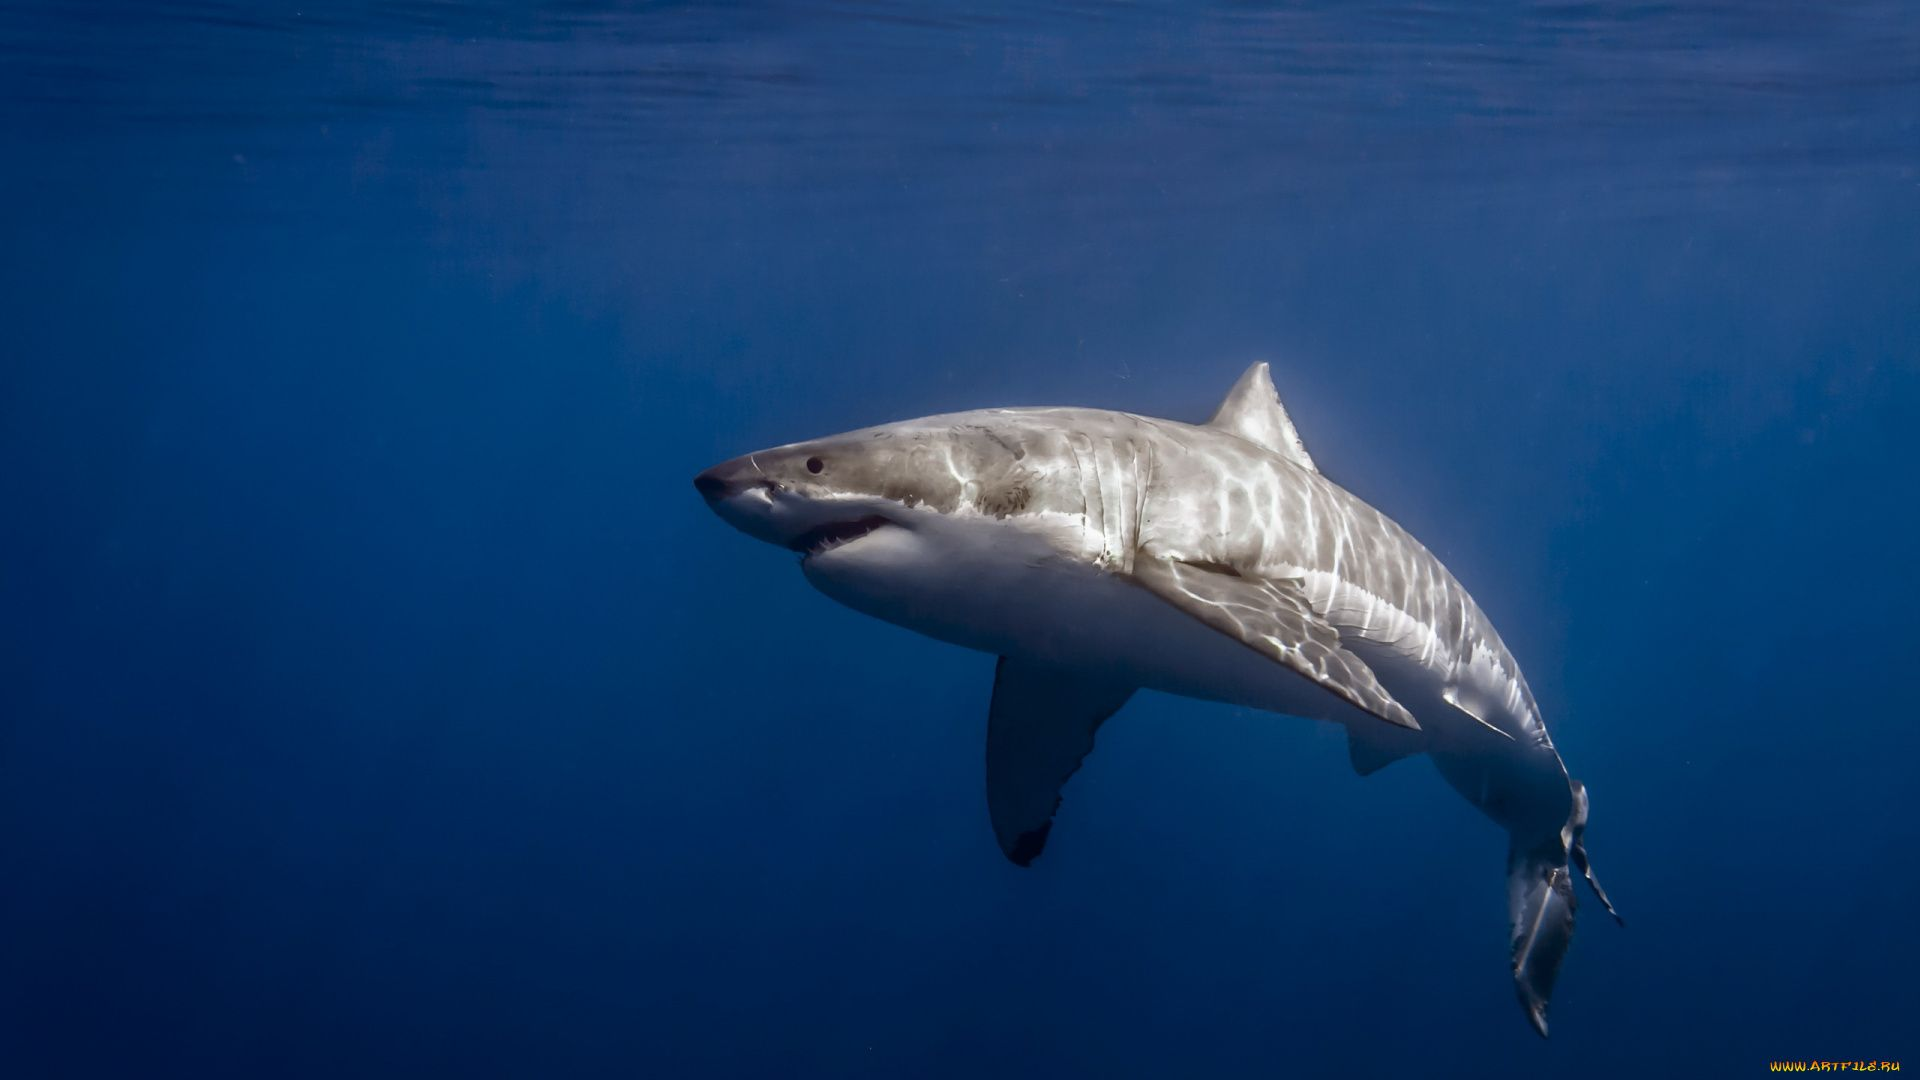 Hd Photo White Shark